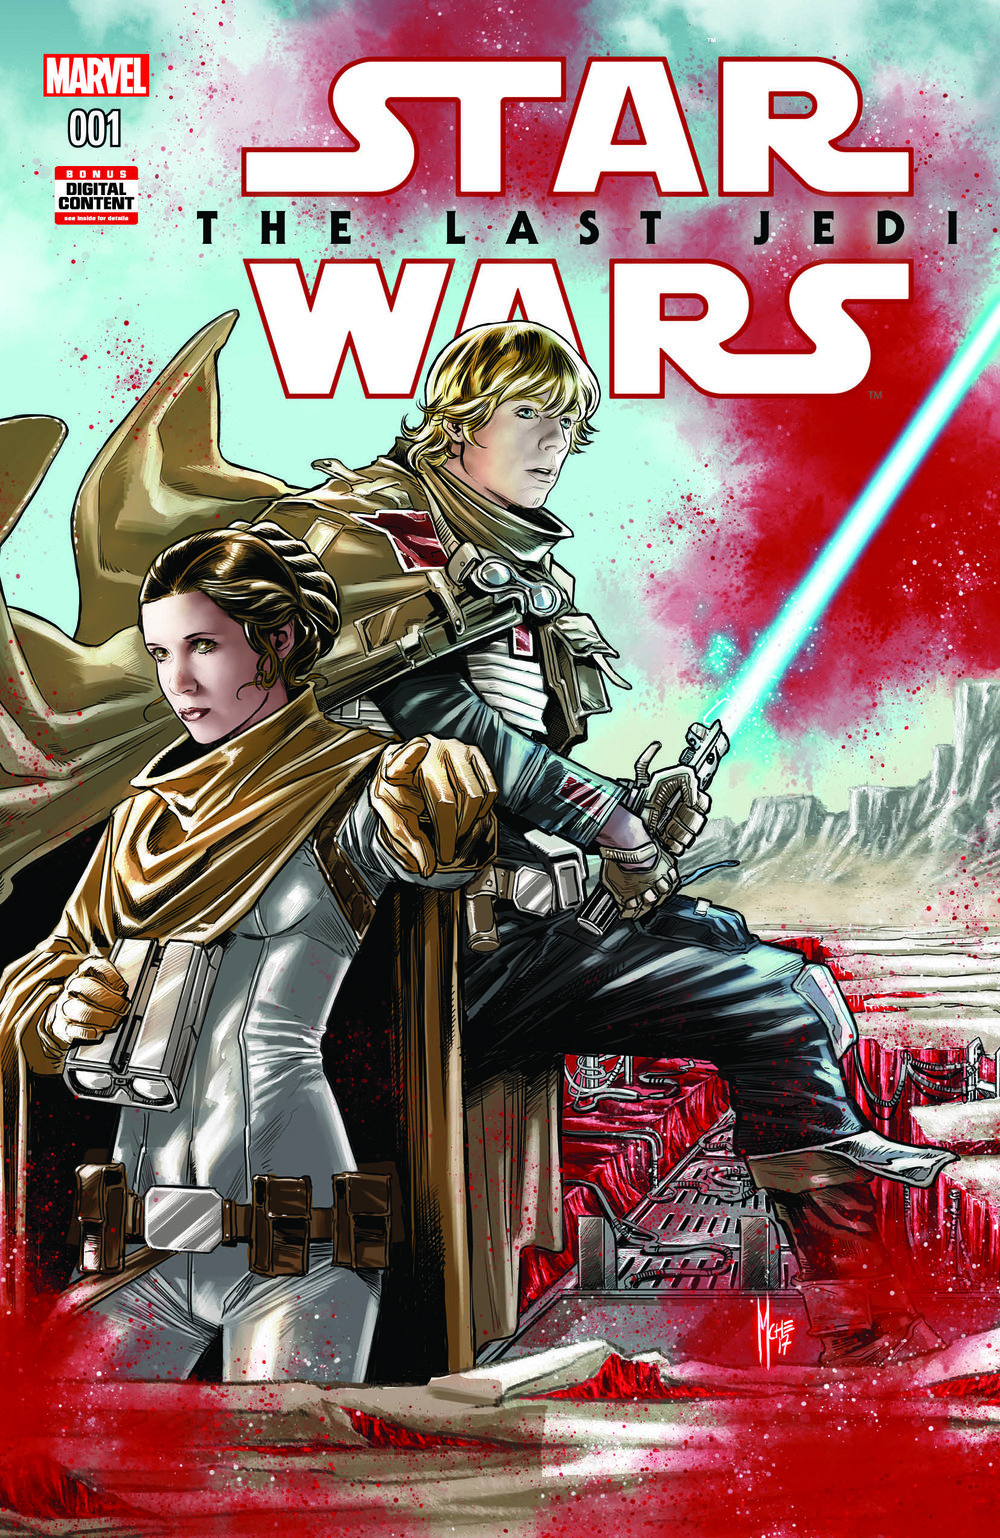 Art by: Marco Checchetto The familiar pop of red on the cover leads me to believe we may get a little more insight into the red mineral hidden beneath the salt-covered surface of Crait.